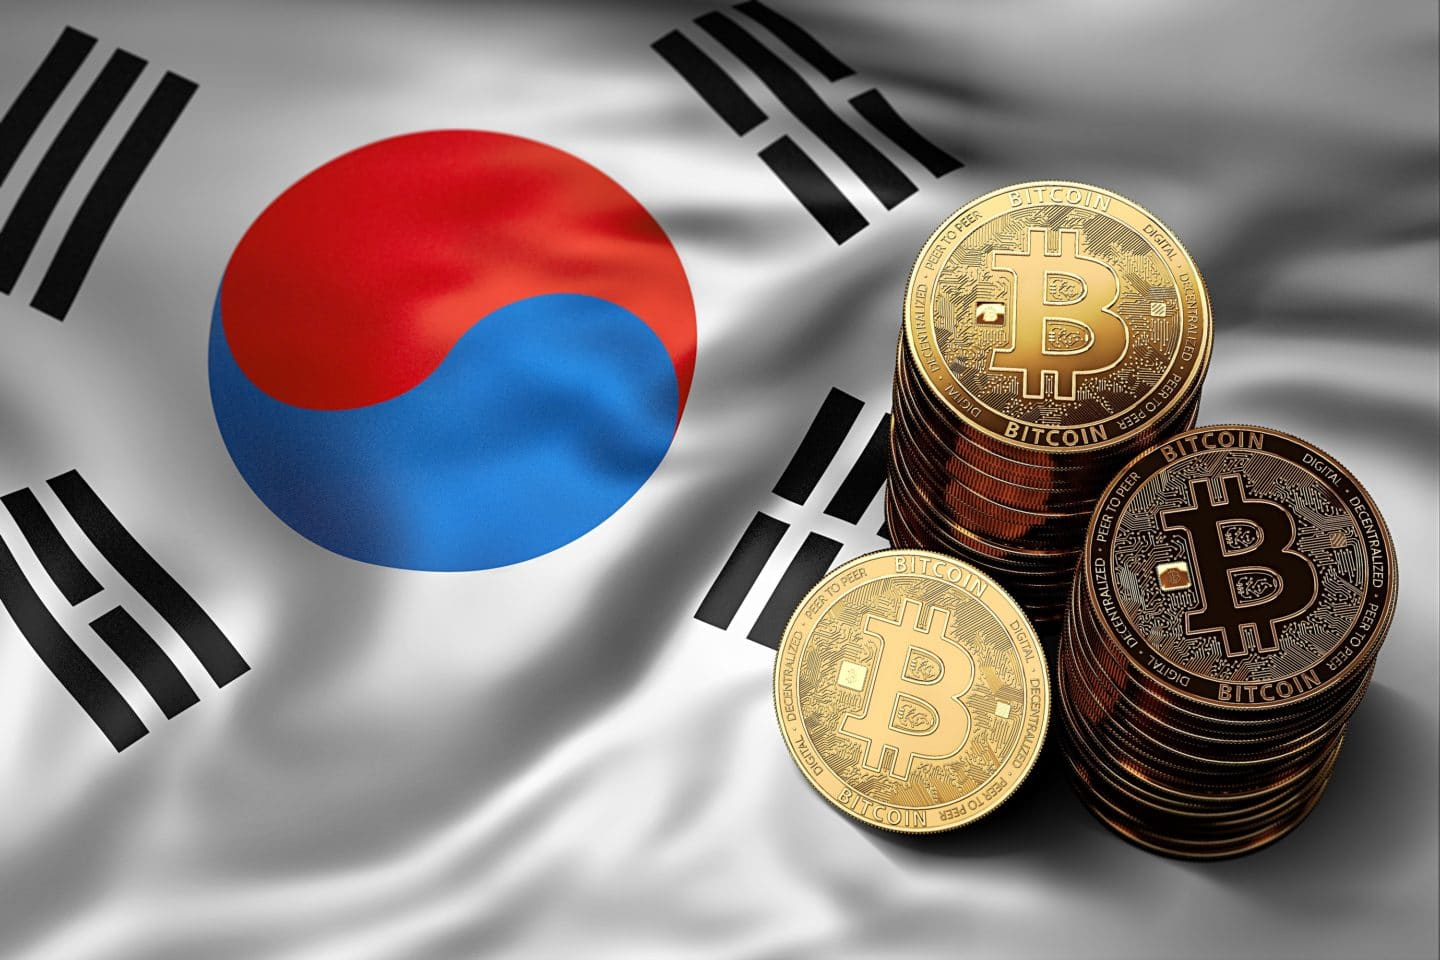 South Korea concedes to crypto currency